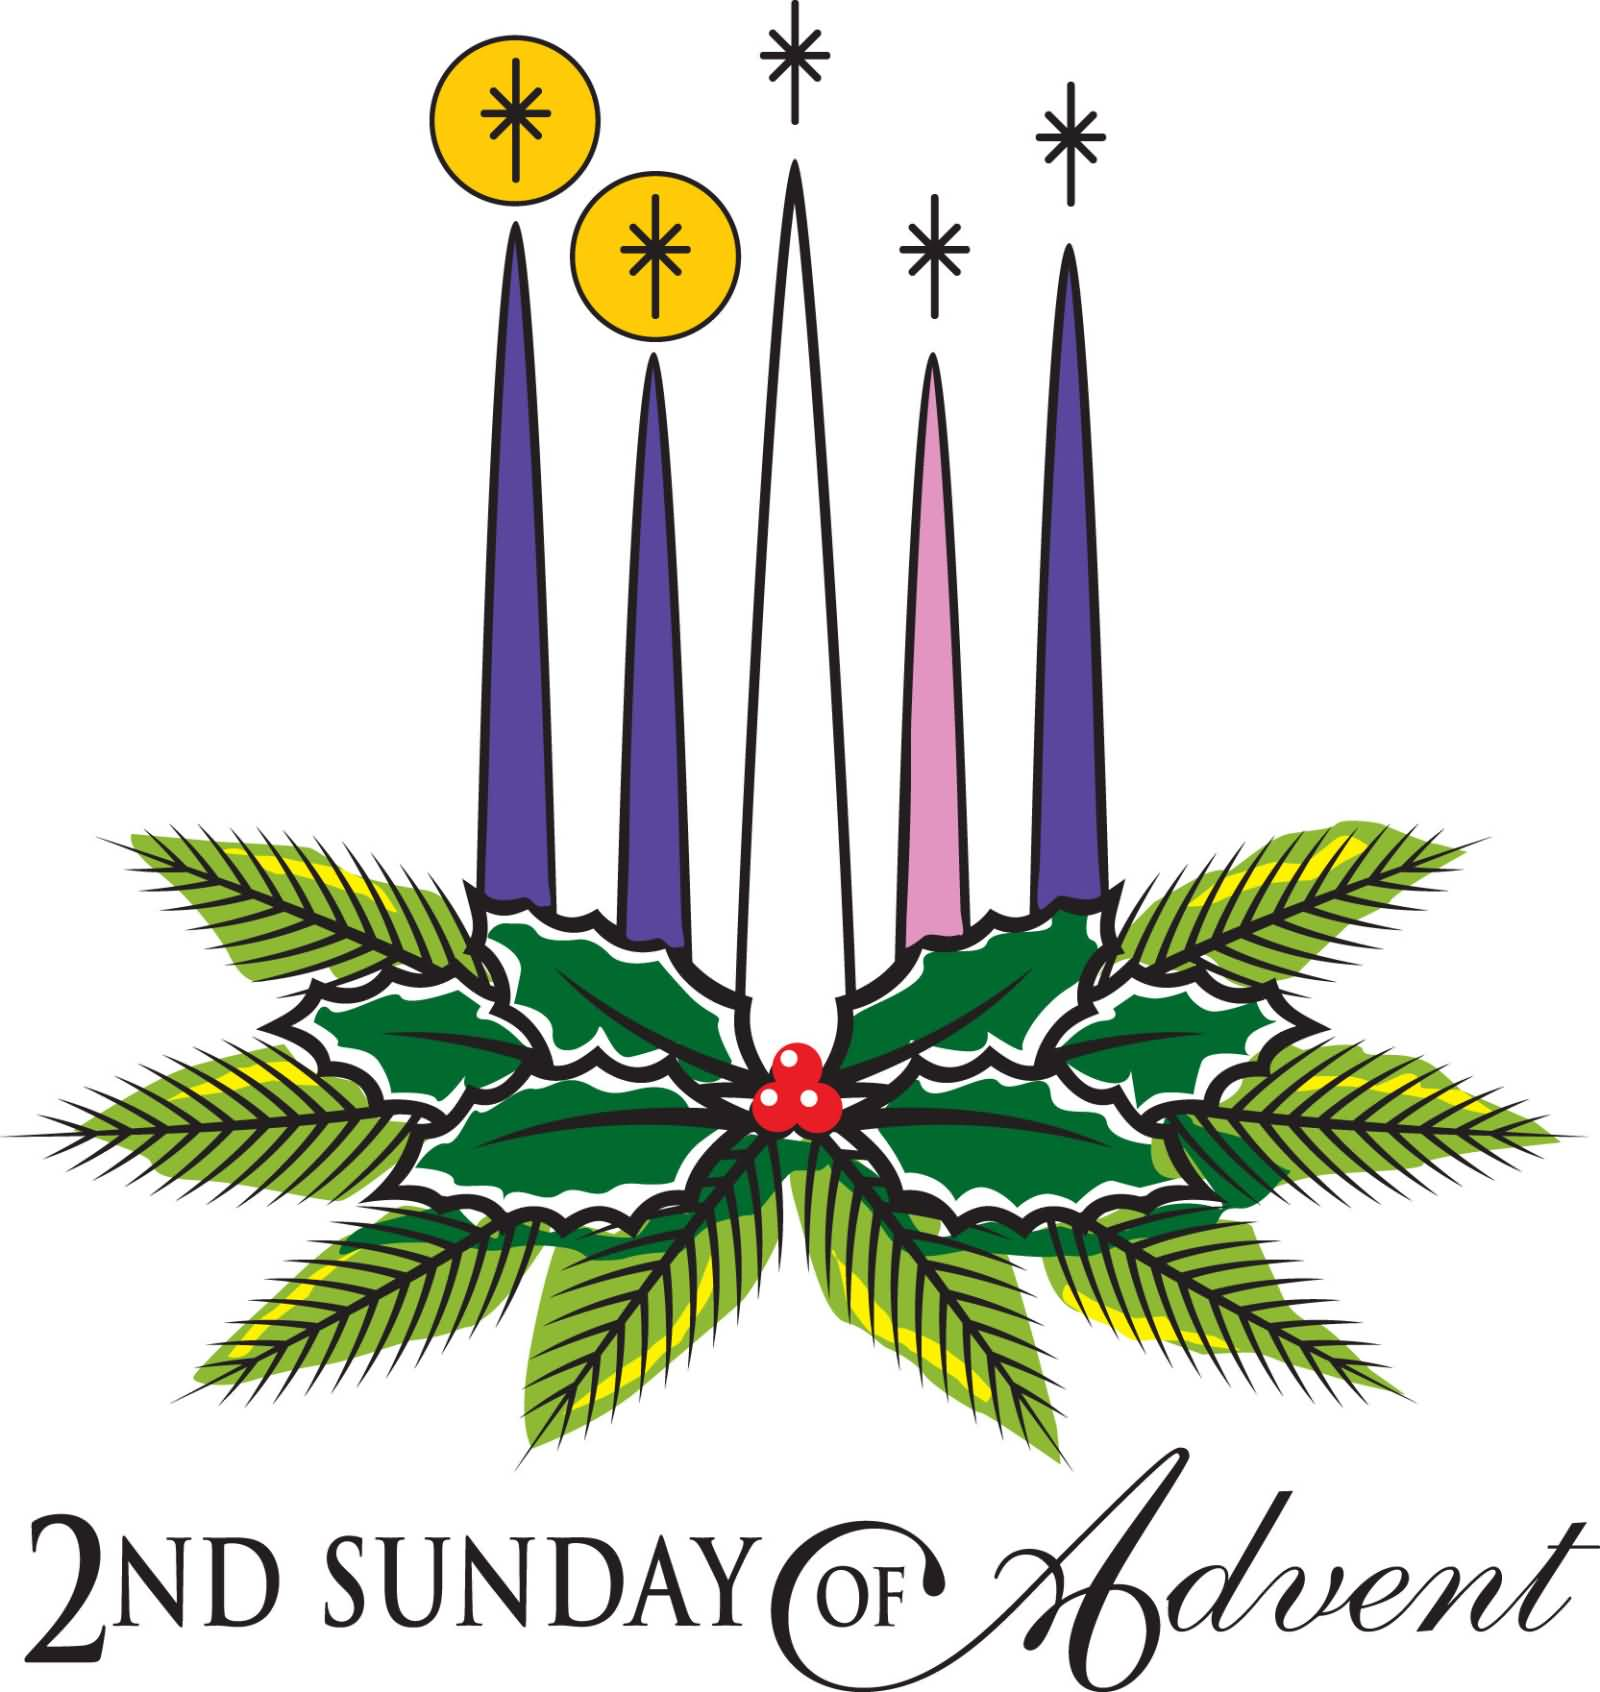 1600x1692 2nd Sunday Of Advent Candles And Palm Tree Leaves Clipart